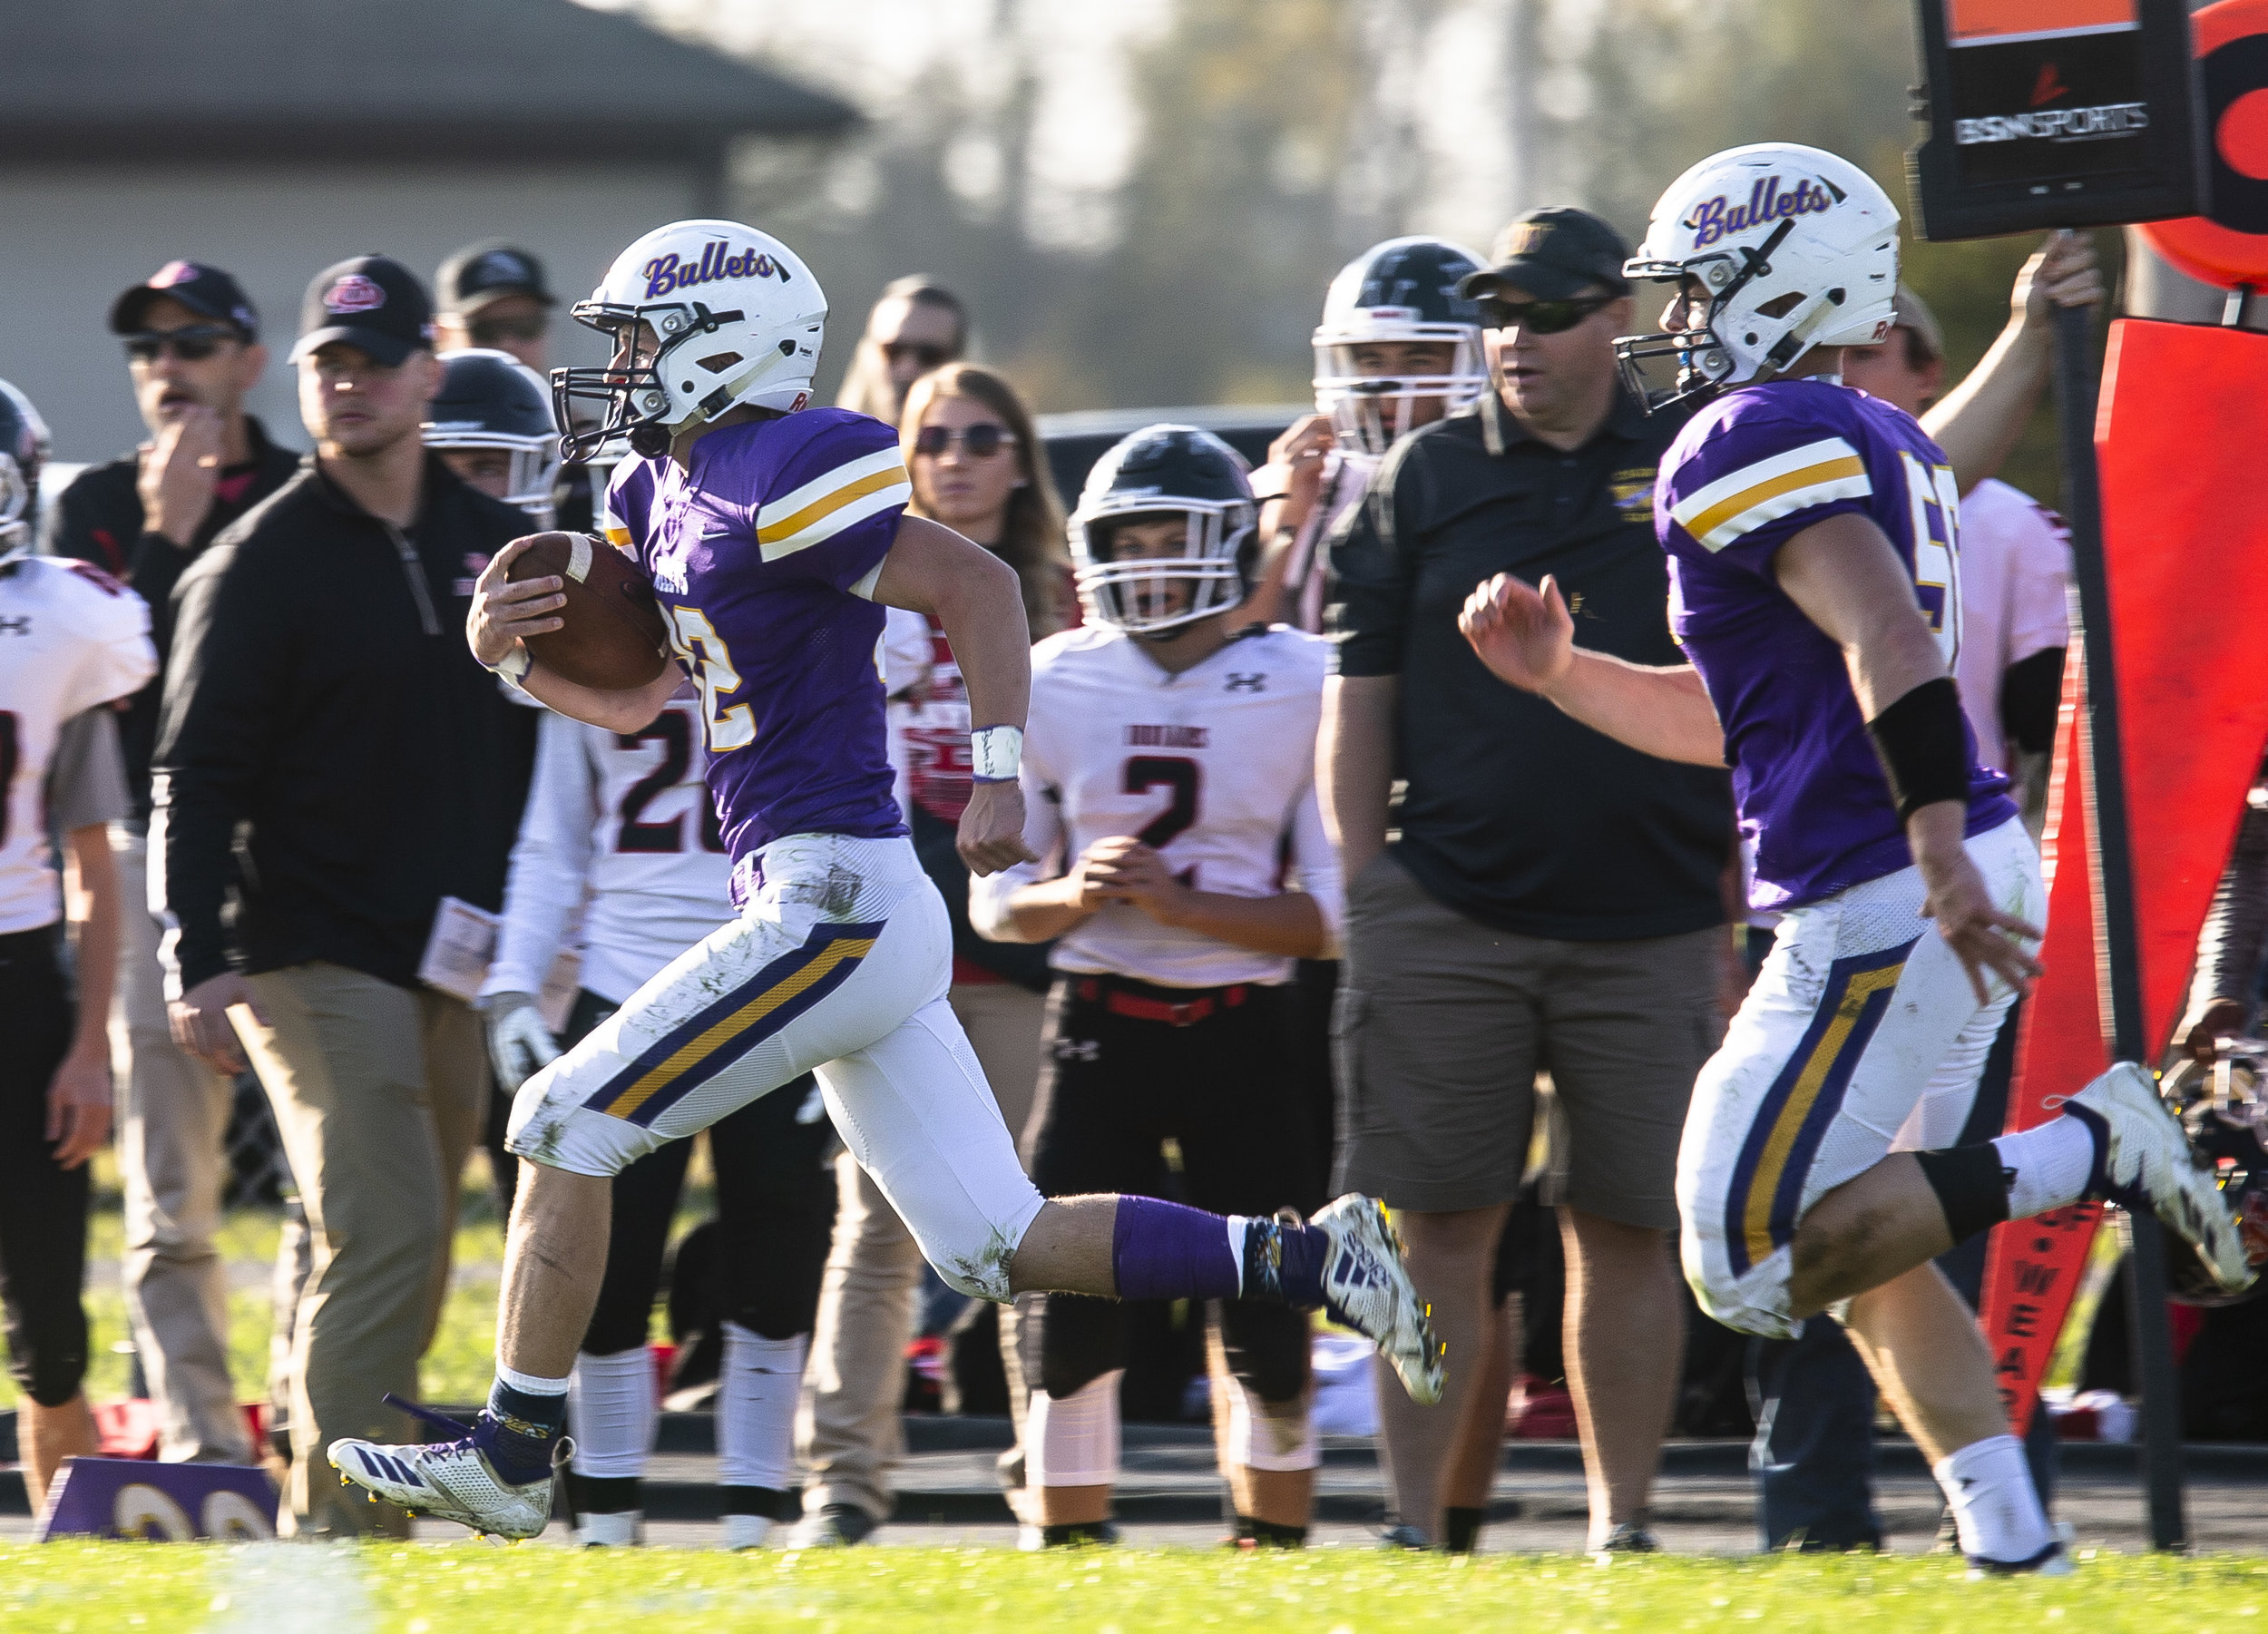 Williamsville's Bill Spaniol skirts the sidelines for yards during the Class 3A playoff game against DuQuoin Saturday, Oct. 27, 2018 at Paul Jenkins Field in Springfield, Ill. [Rich Saal/The State Journal-Register]